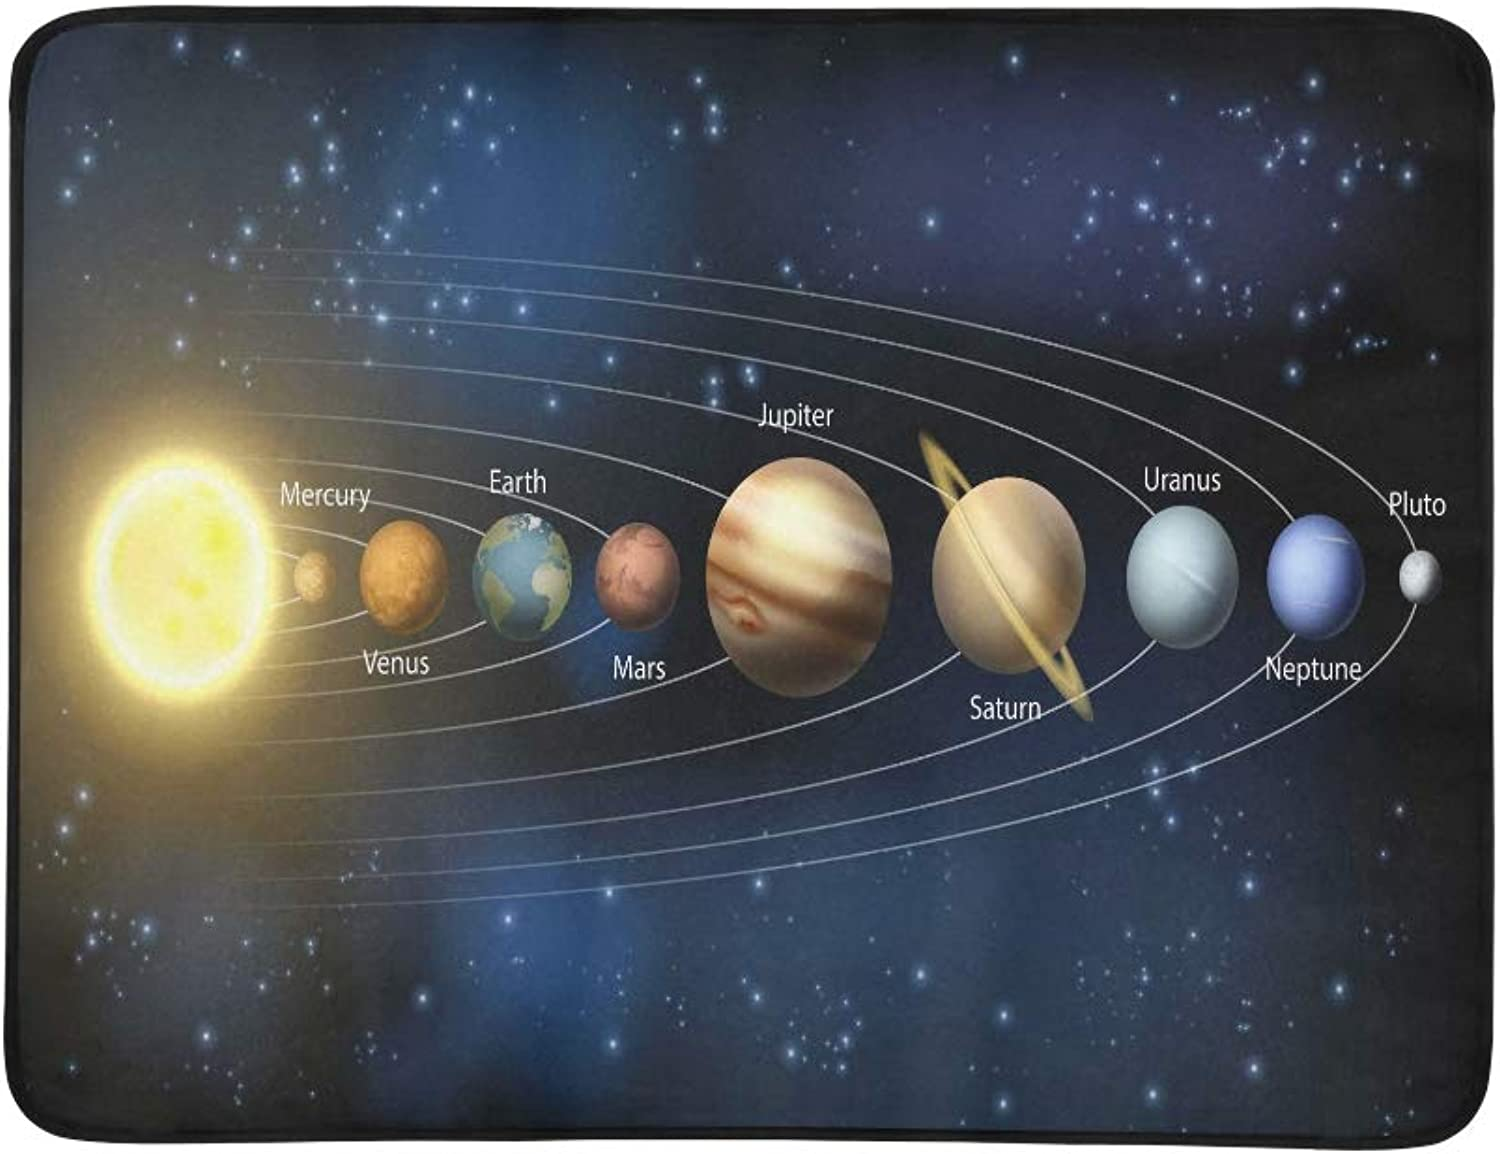 An Illustration of The Planets of Our Solar System Pattern Portable and Foldable Blanket Mat 60x78 Inch Handy Mat for Camping Picnic Beach Indoor Outdoor Travel